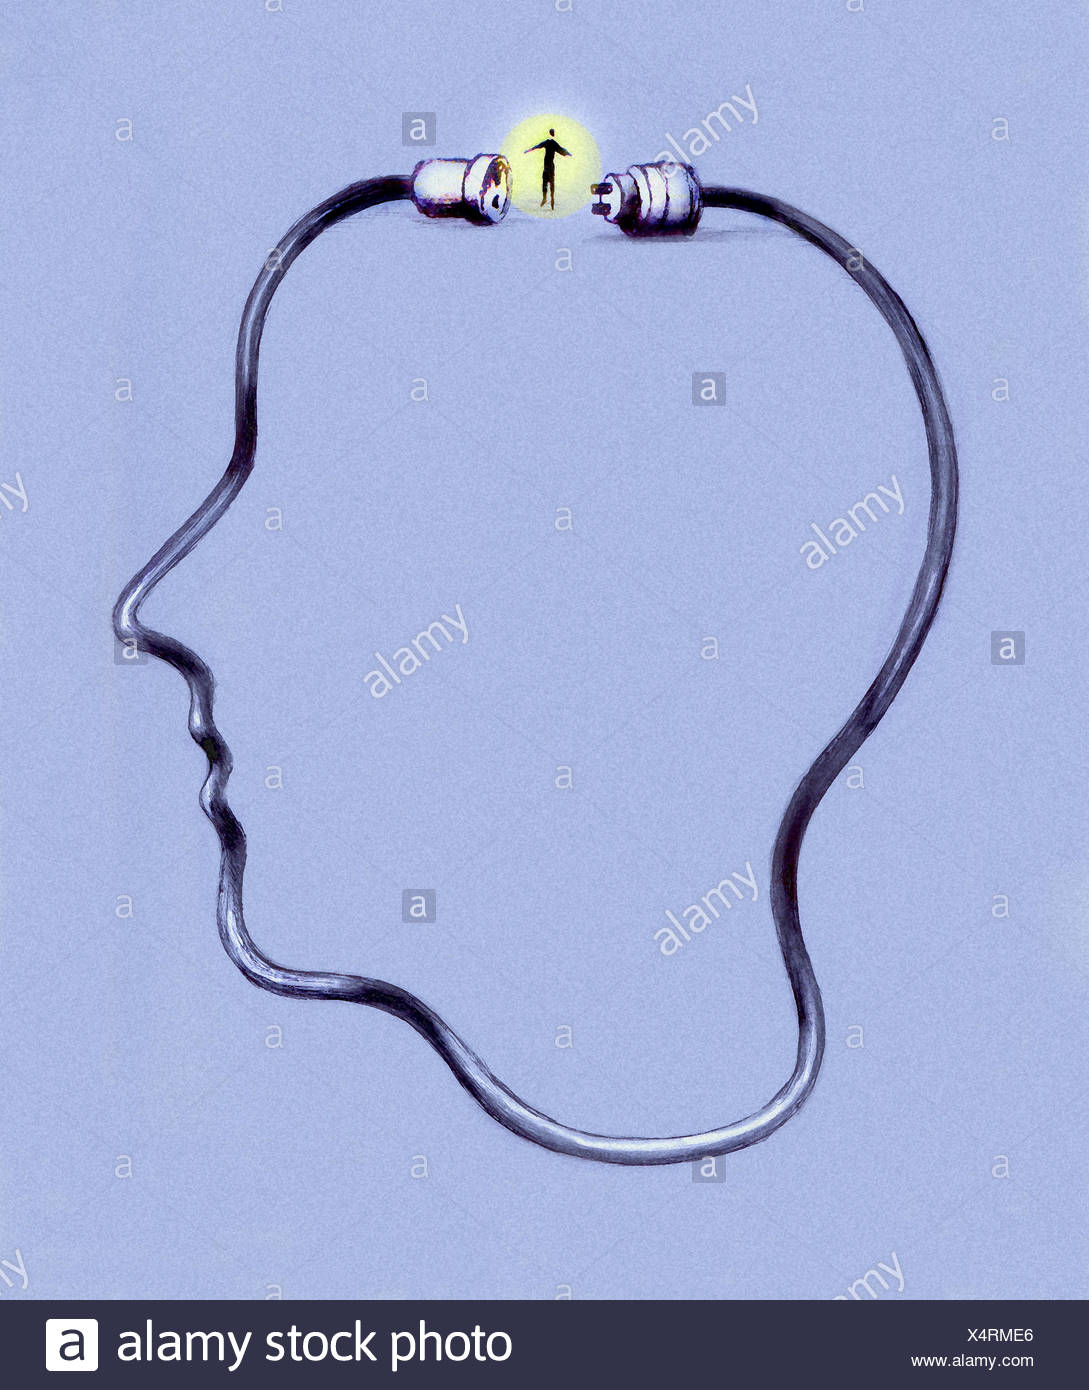 Plug and socket on electric cable completing profile of man's head - Stock Image